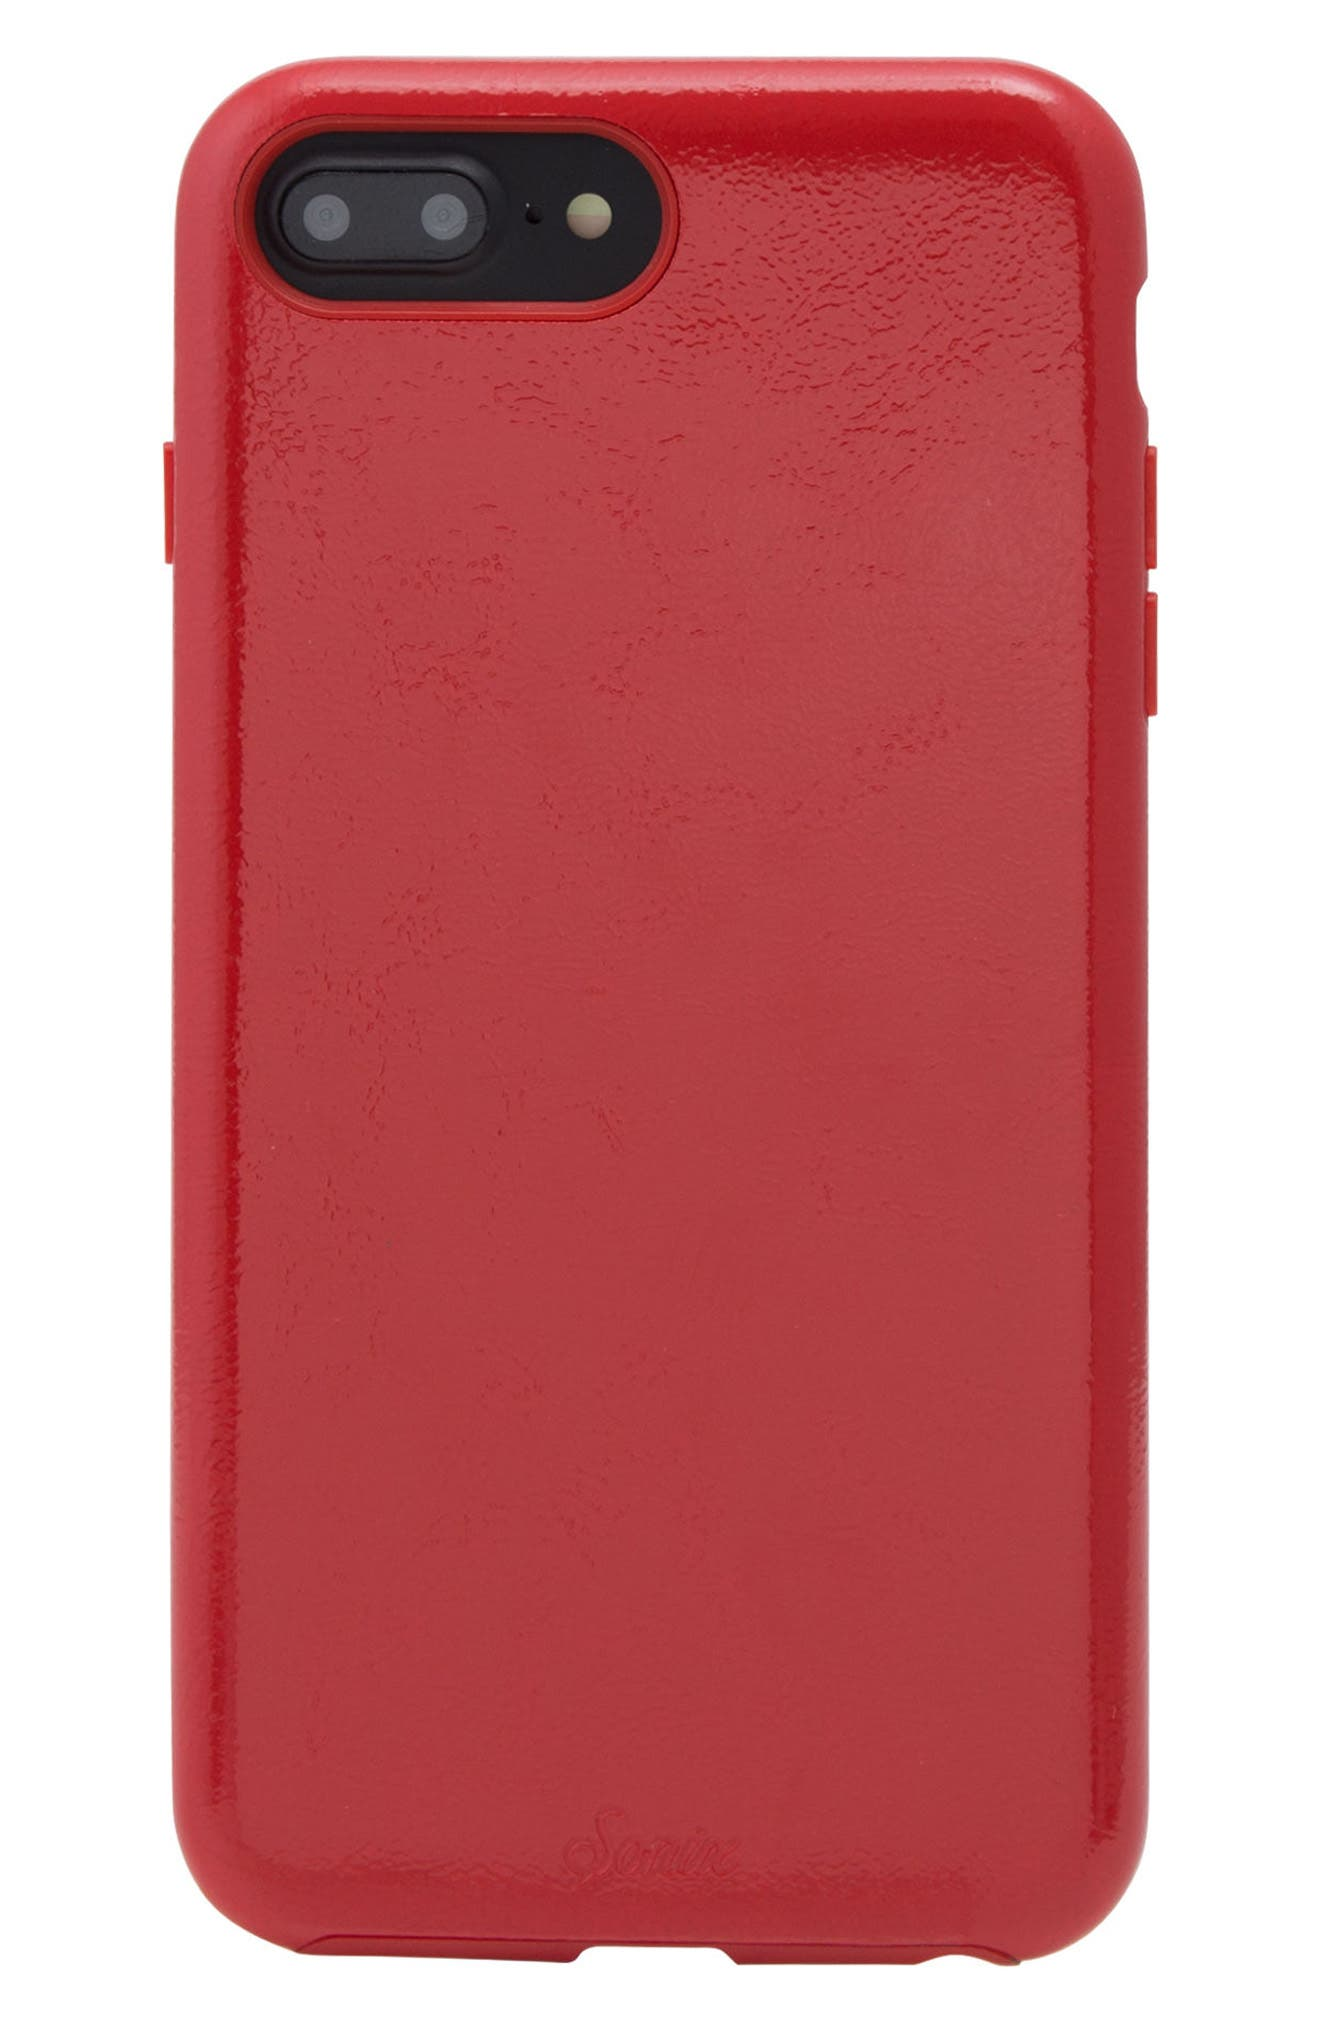 Cherry Faux Leather iPhone 6/6s/7/8 Plus Case,                             Main thumbnail 1, color,                             Cherry Red